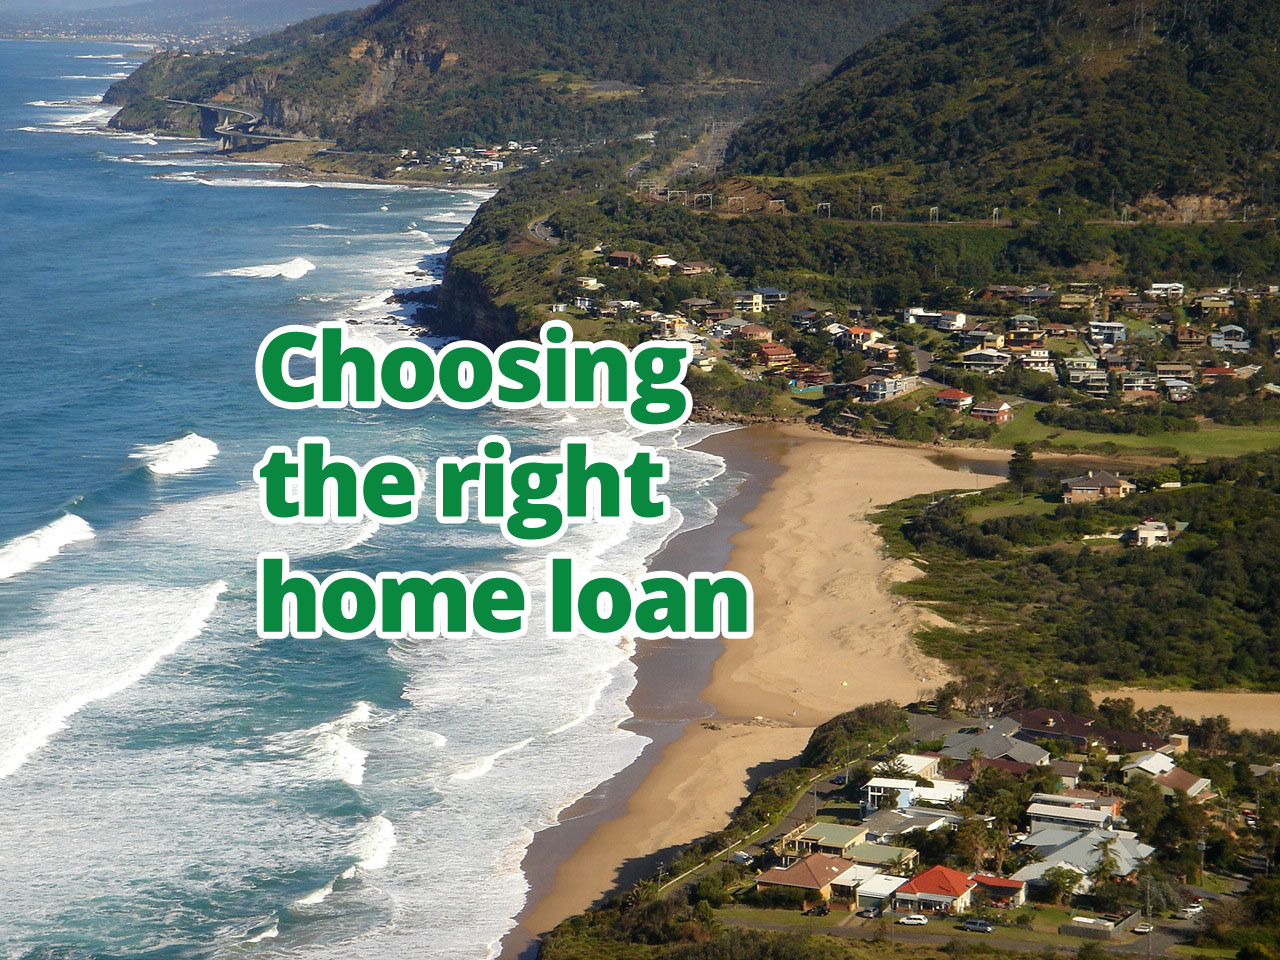 Choosing the right home loan